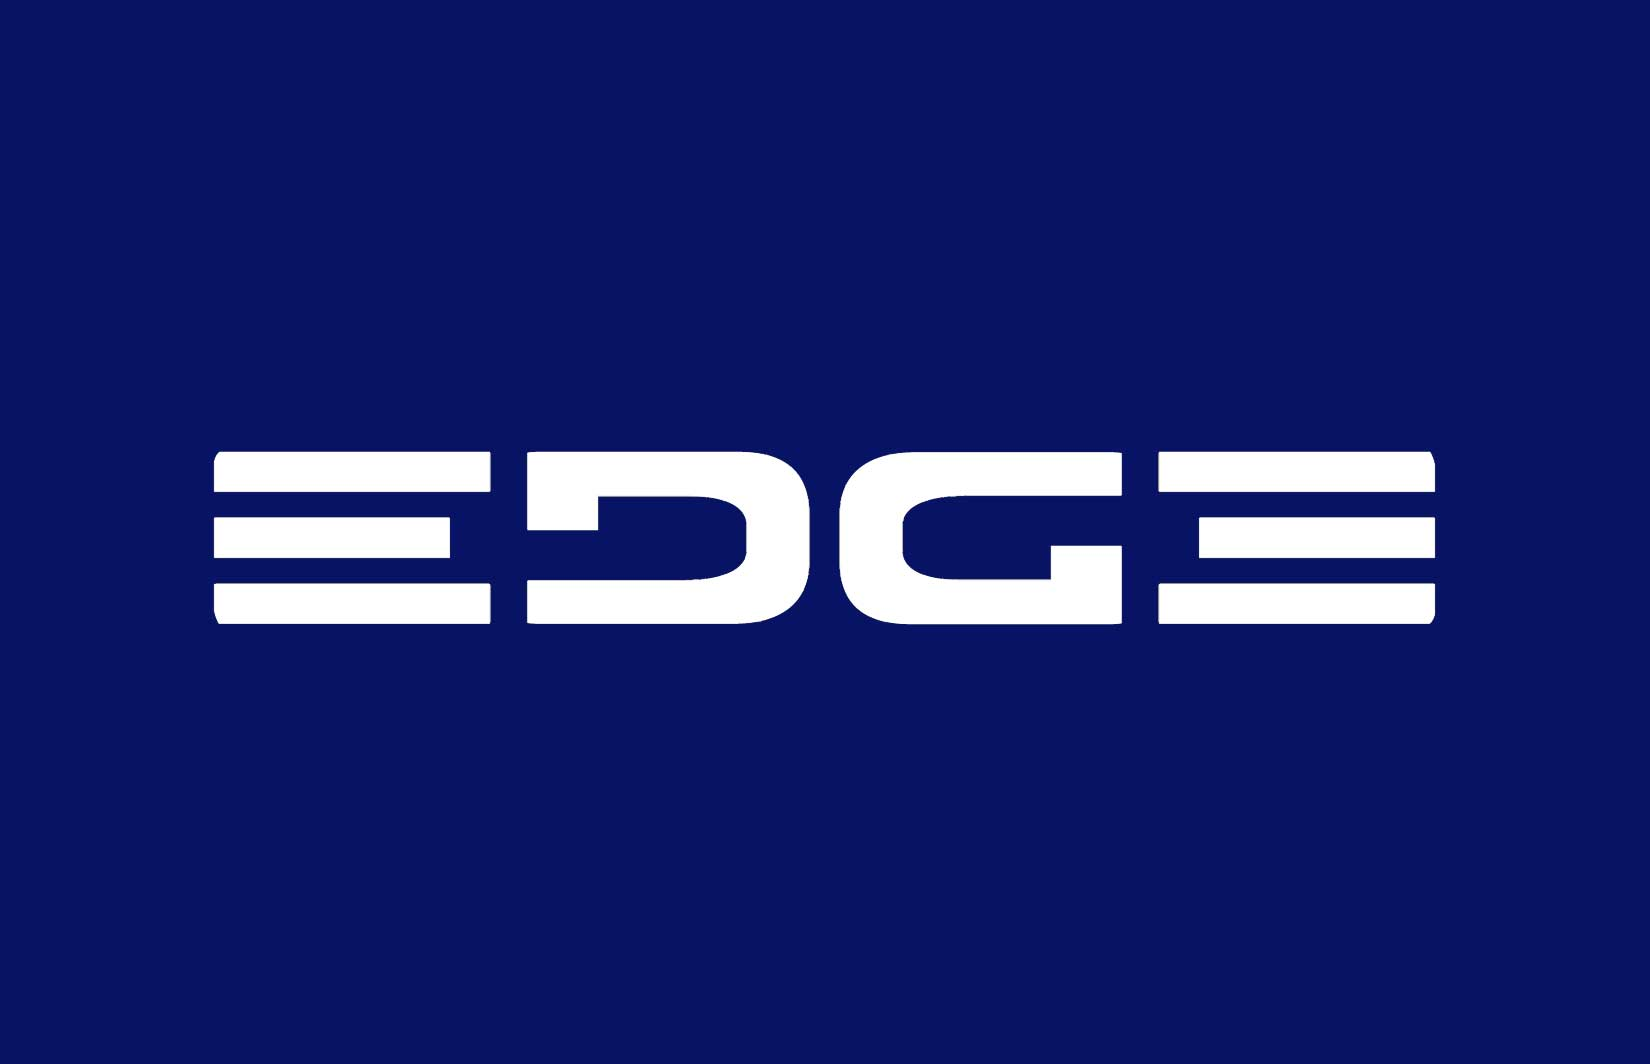 Ford Edge Ambigram Logo